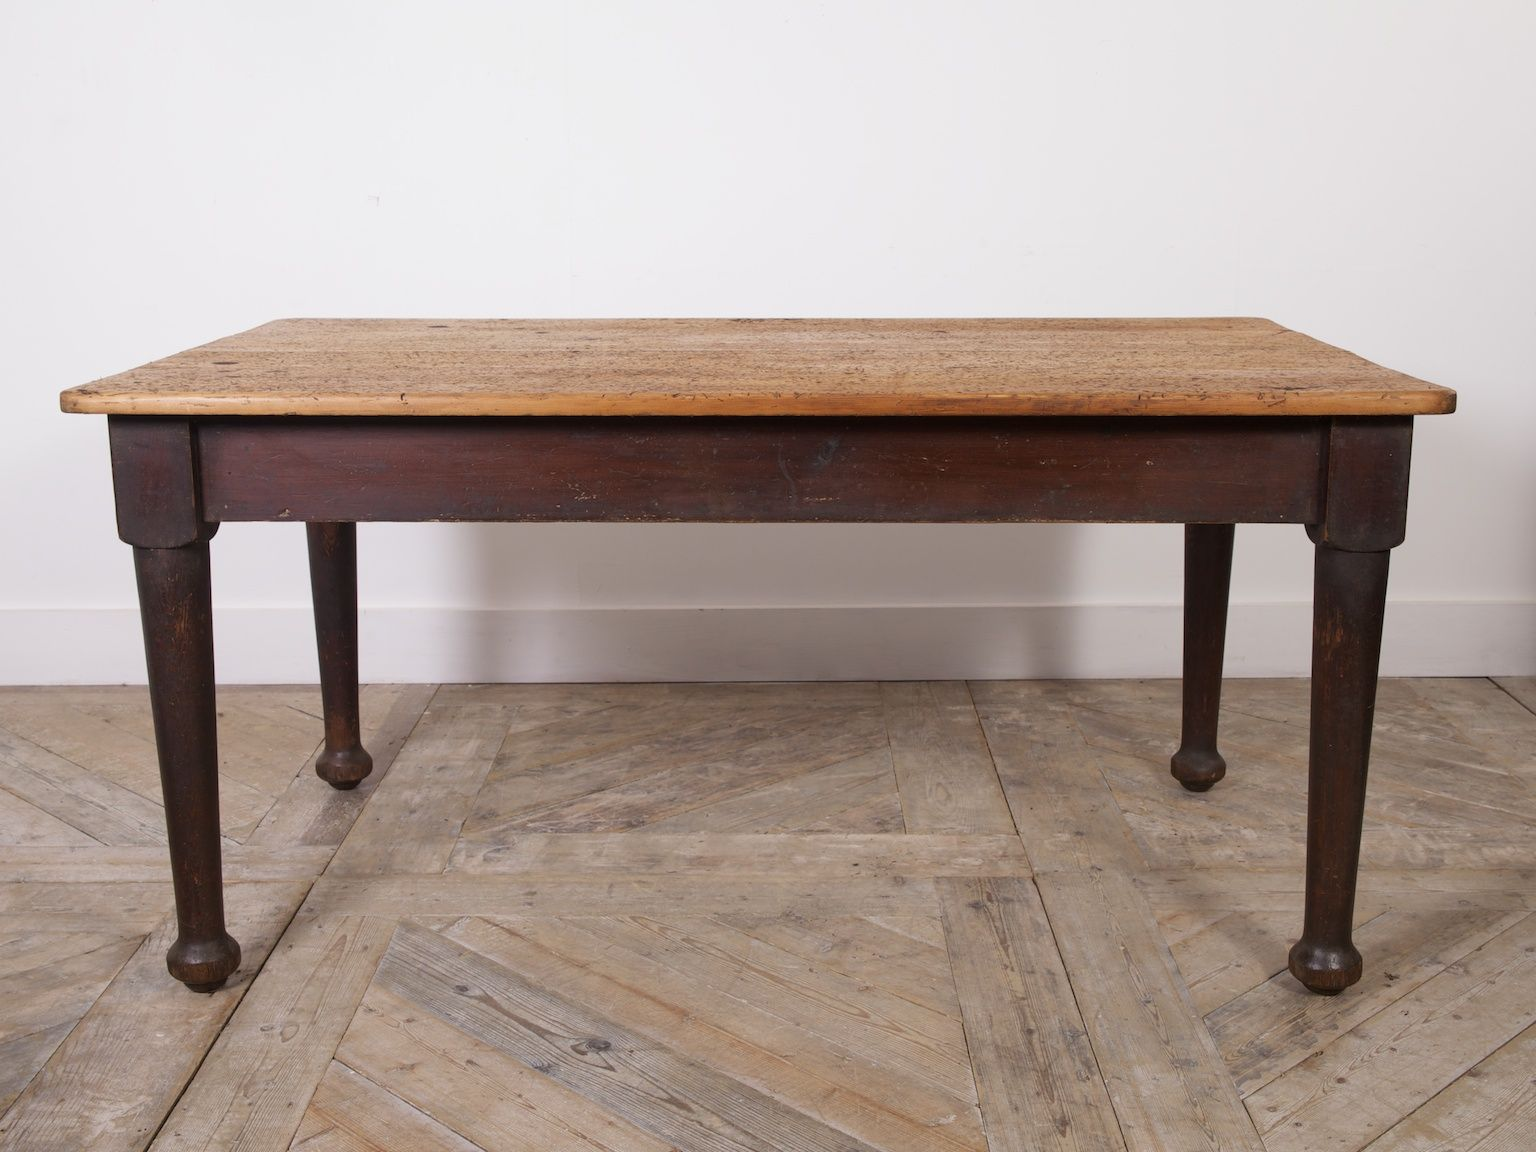 Antique farmhouse table - Antique Farmhouse Table